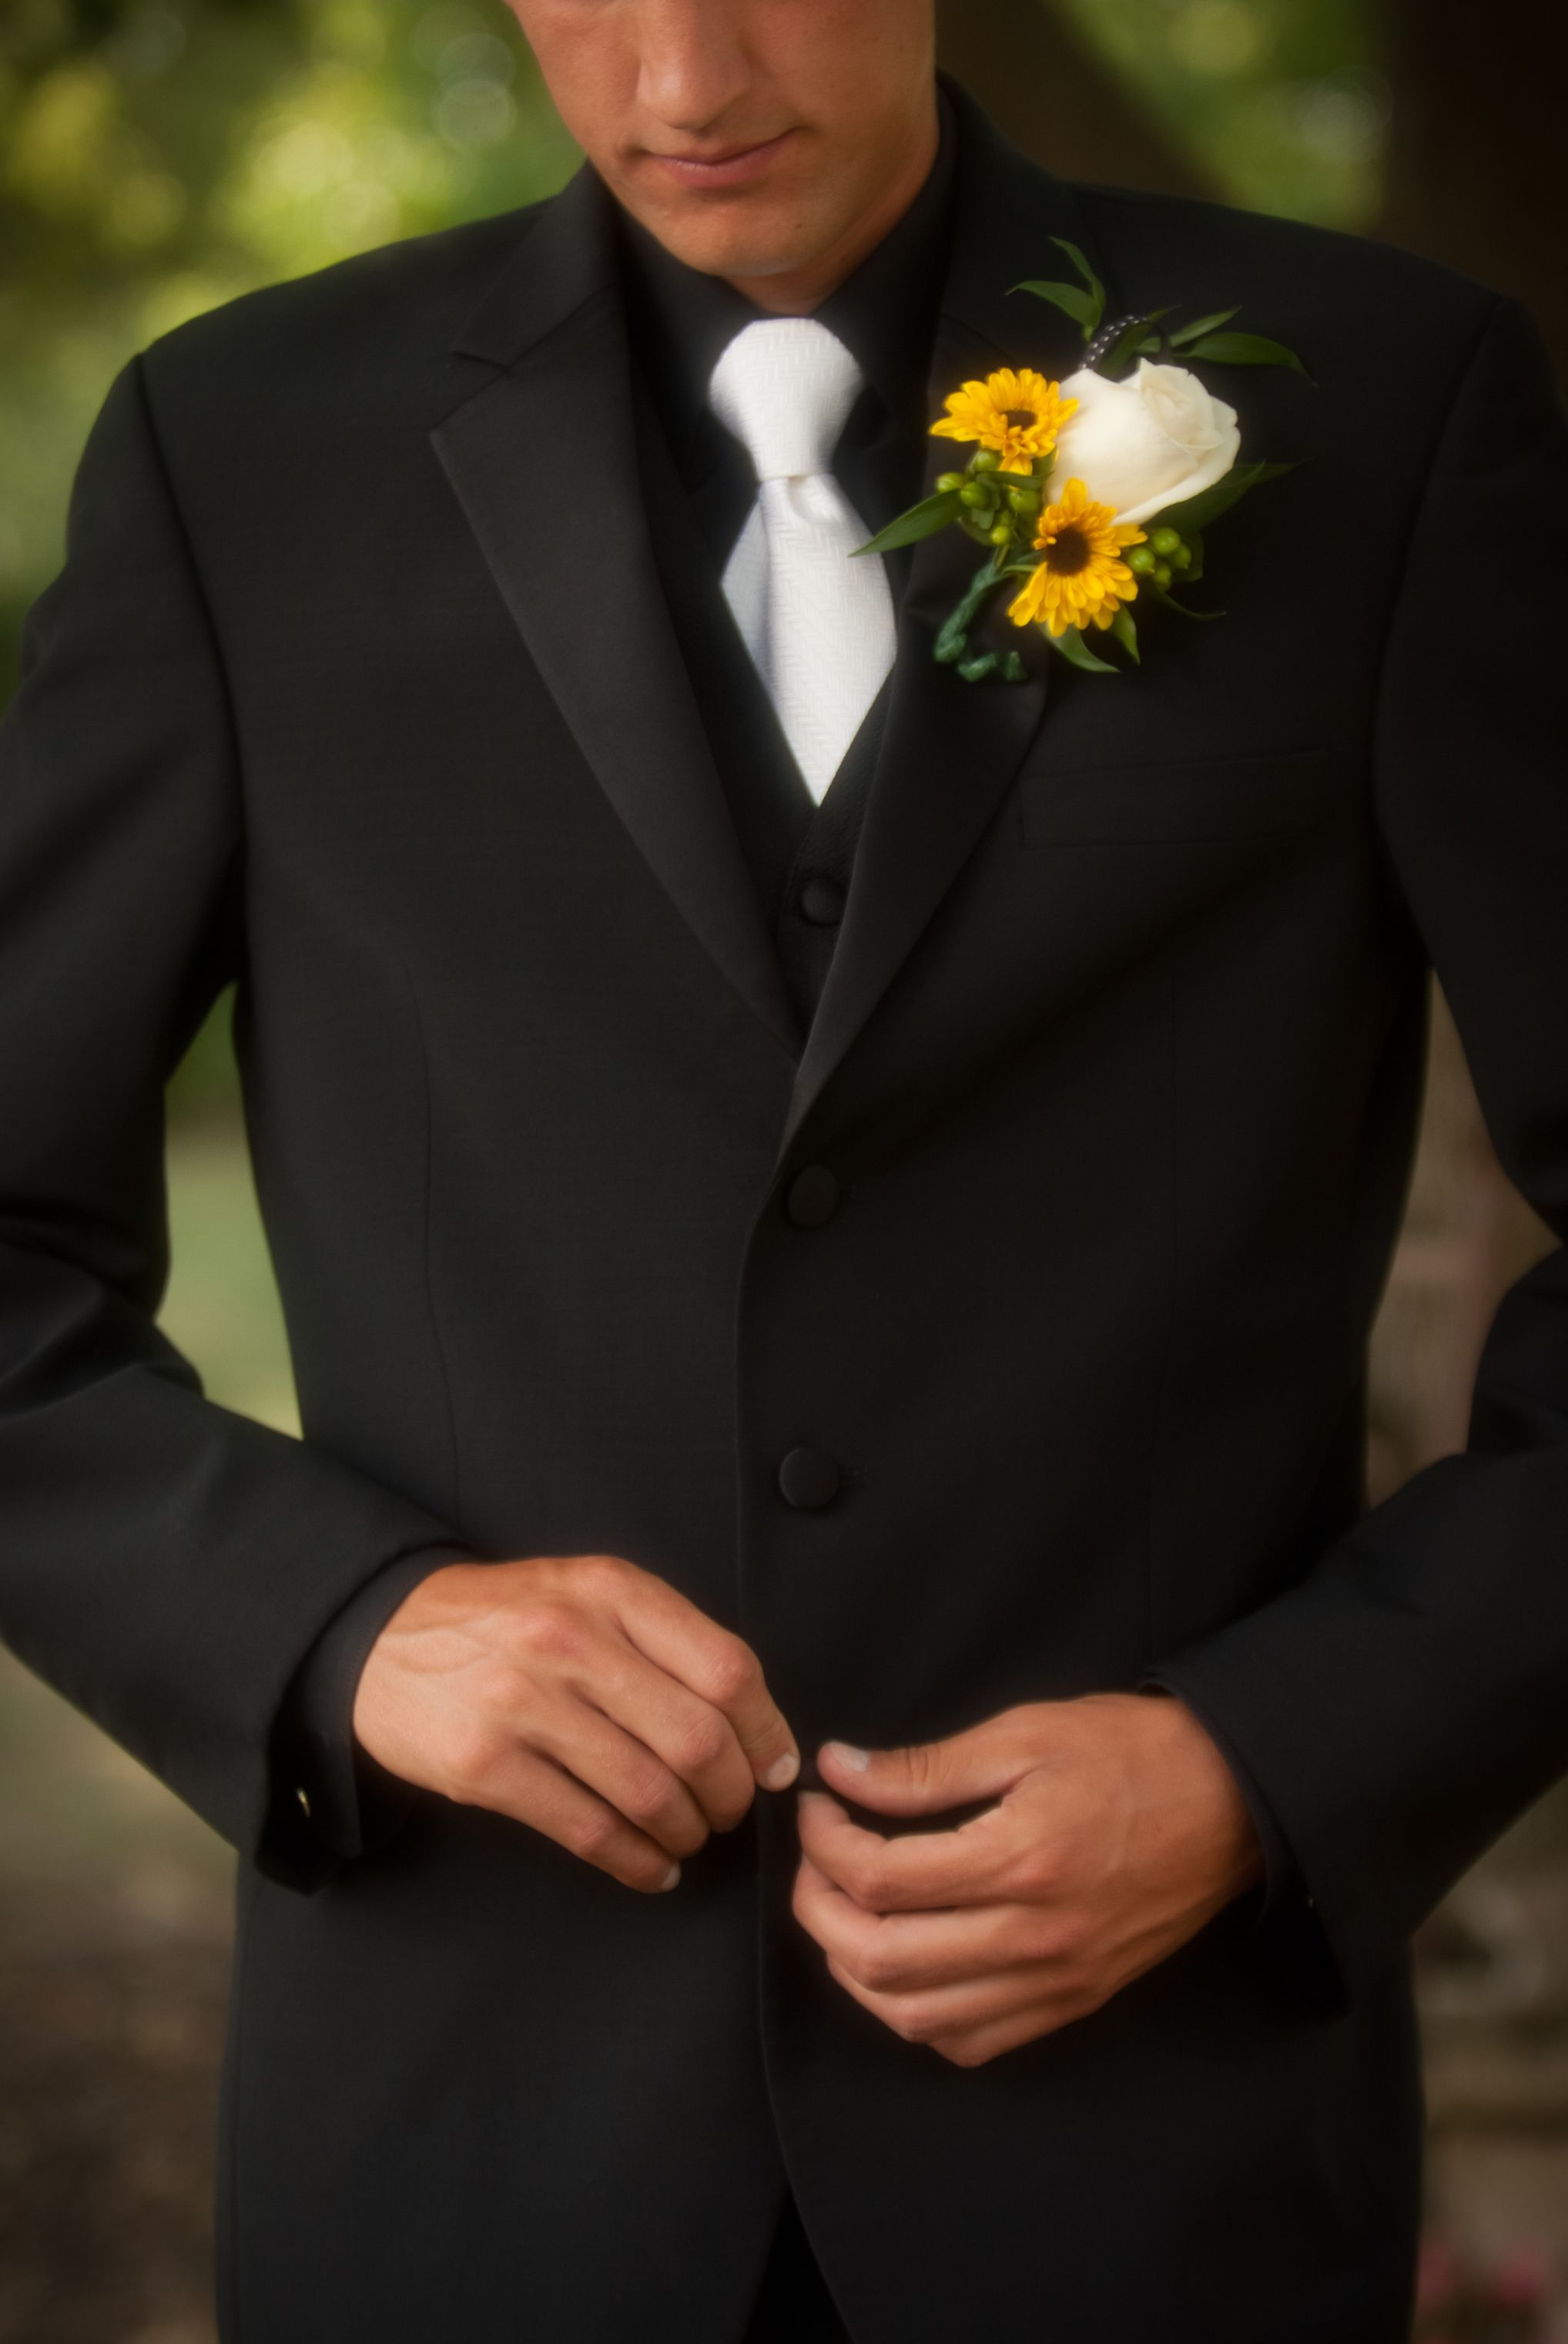 9ce5135b6941 The groom. Sunflower flowers. Black with white tie.